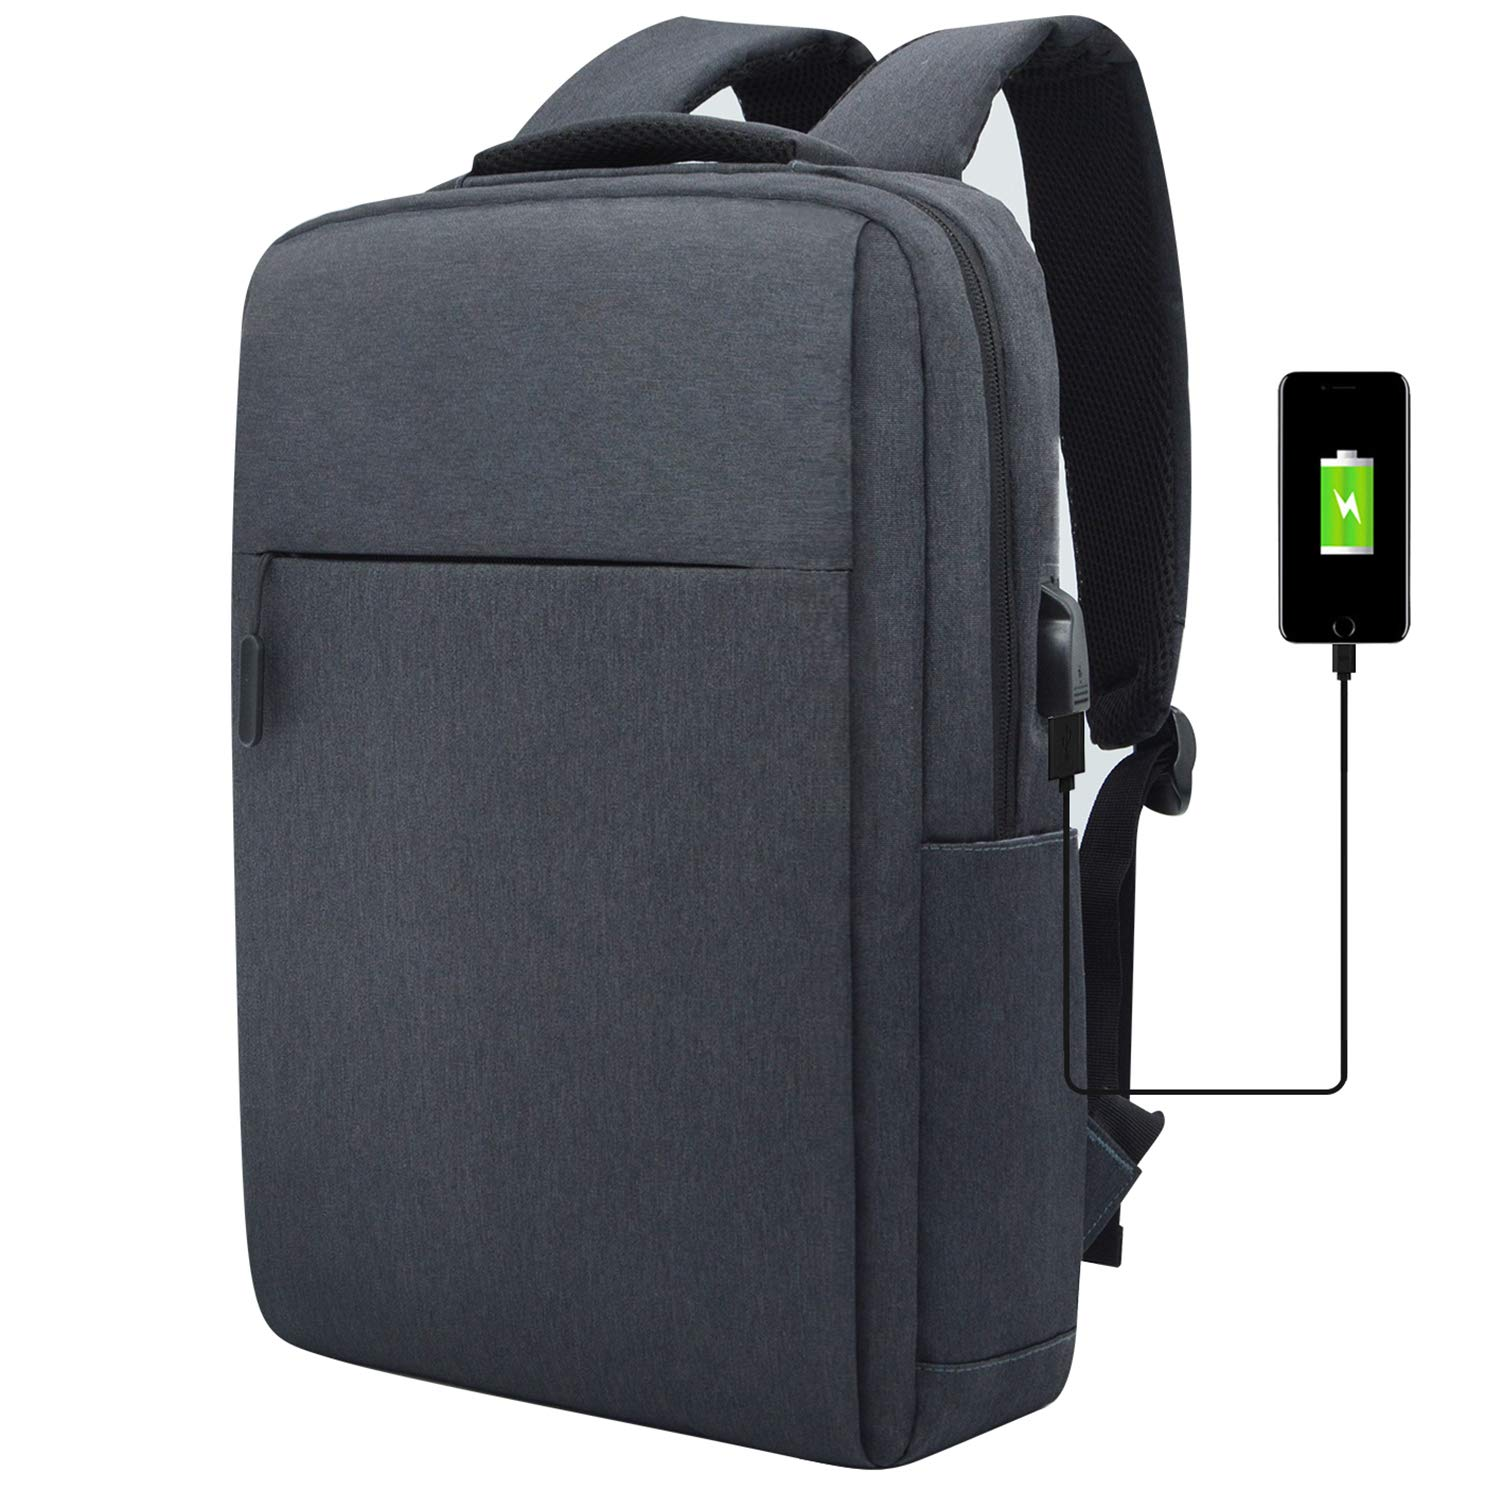 Slim Laptop Backpack Lightweight Business Backpack College School Bookbag Fits 15 15.6 Inches Laptop Water Resistant Computer Bag with UBS Charging Port and 1 Universal Keyboard Cover, Gray